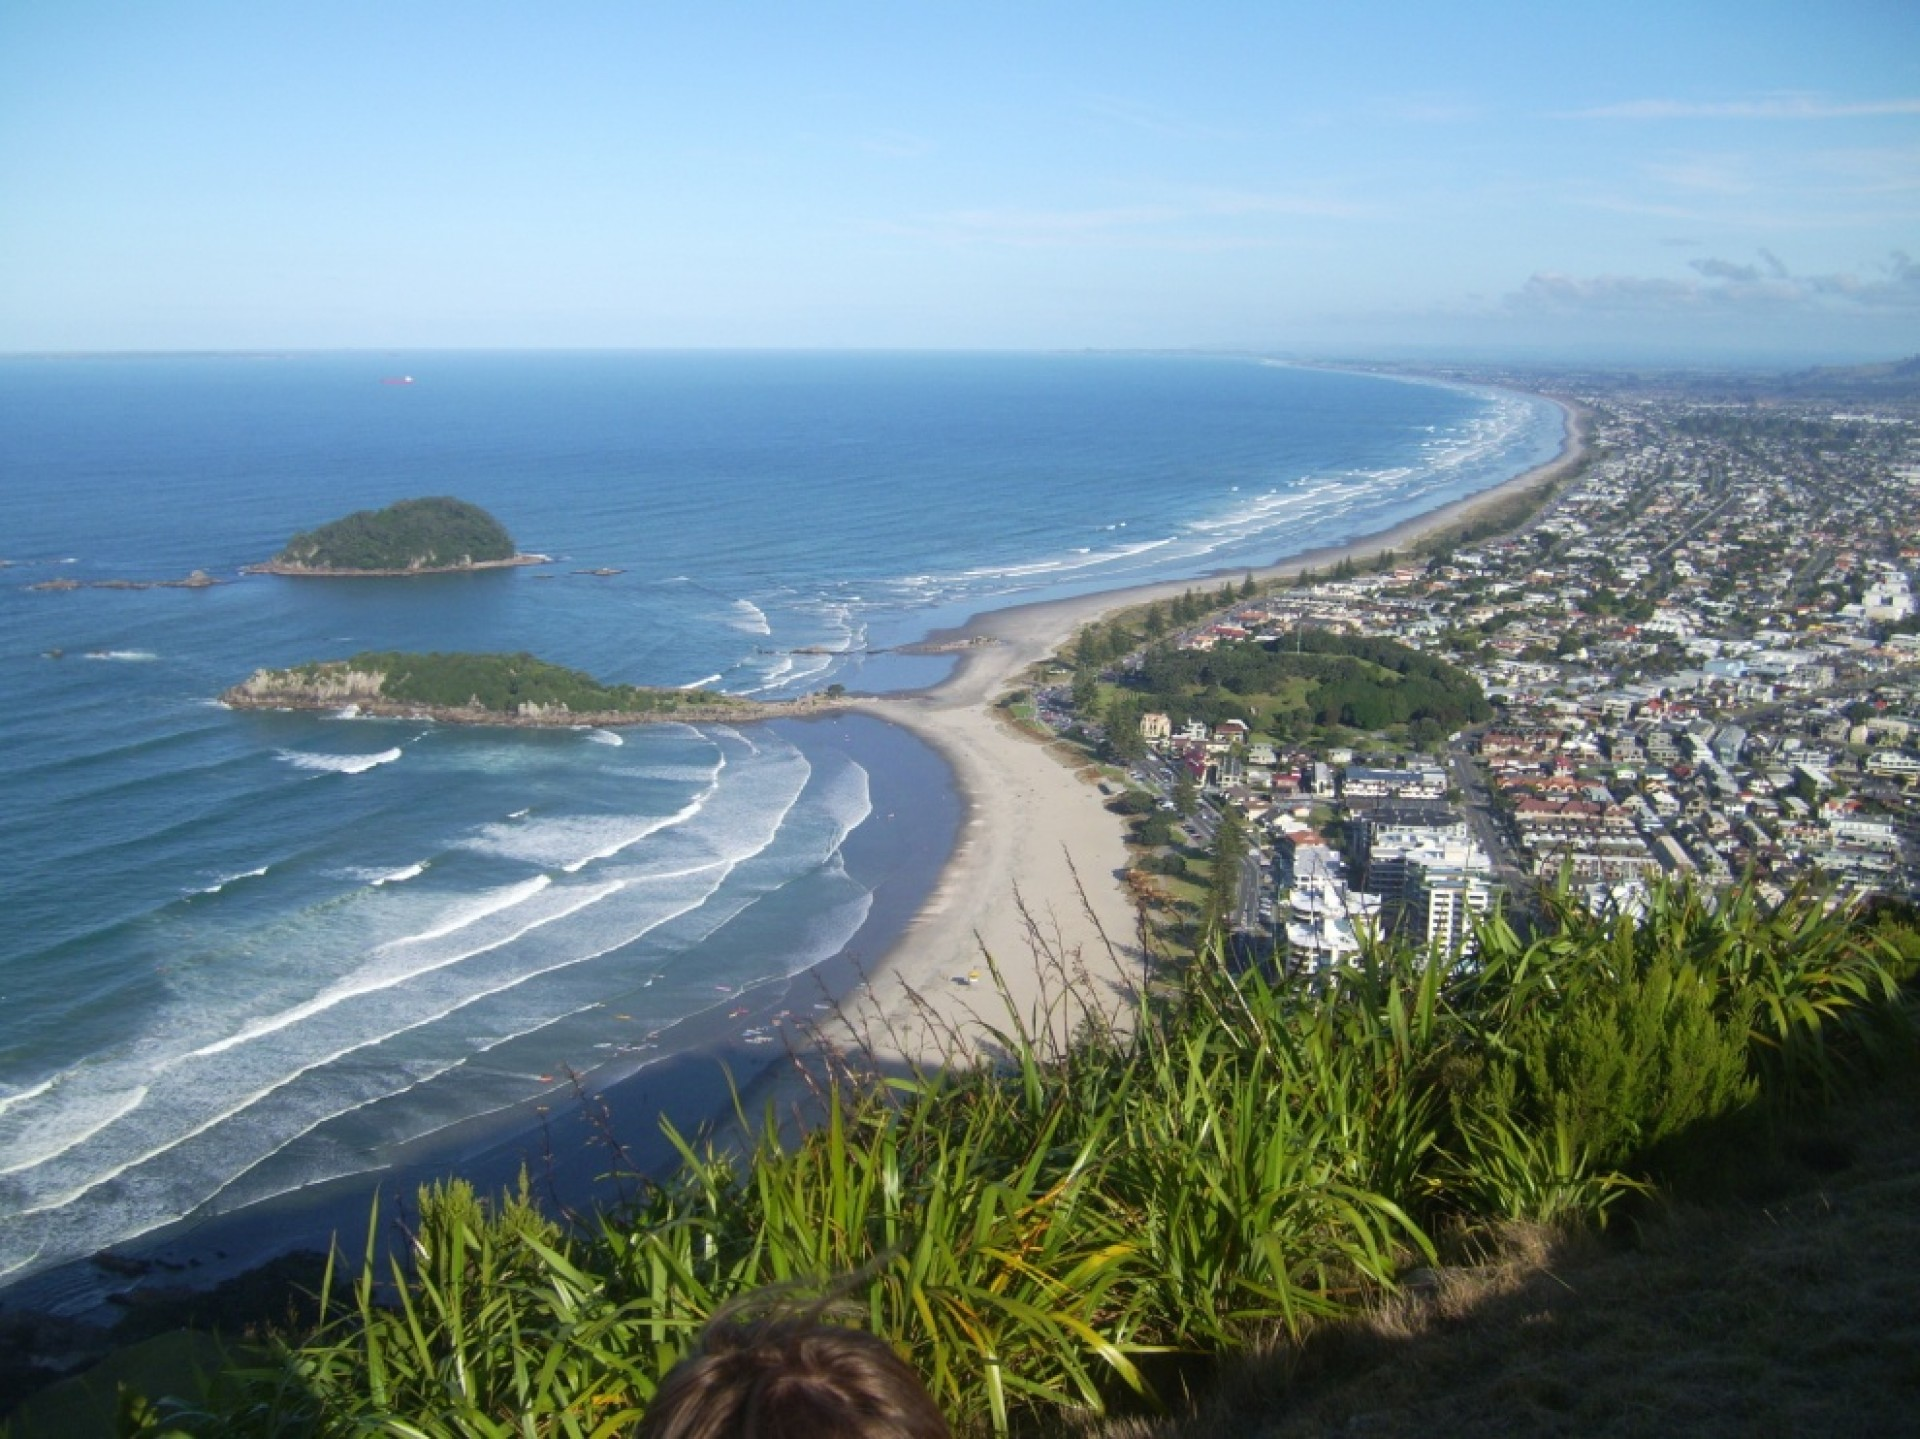 kels's photo of Mount Maunganui